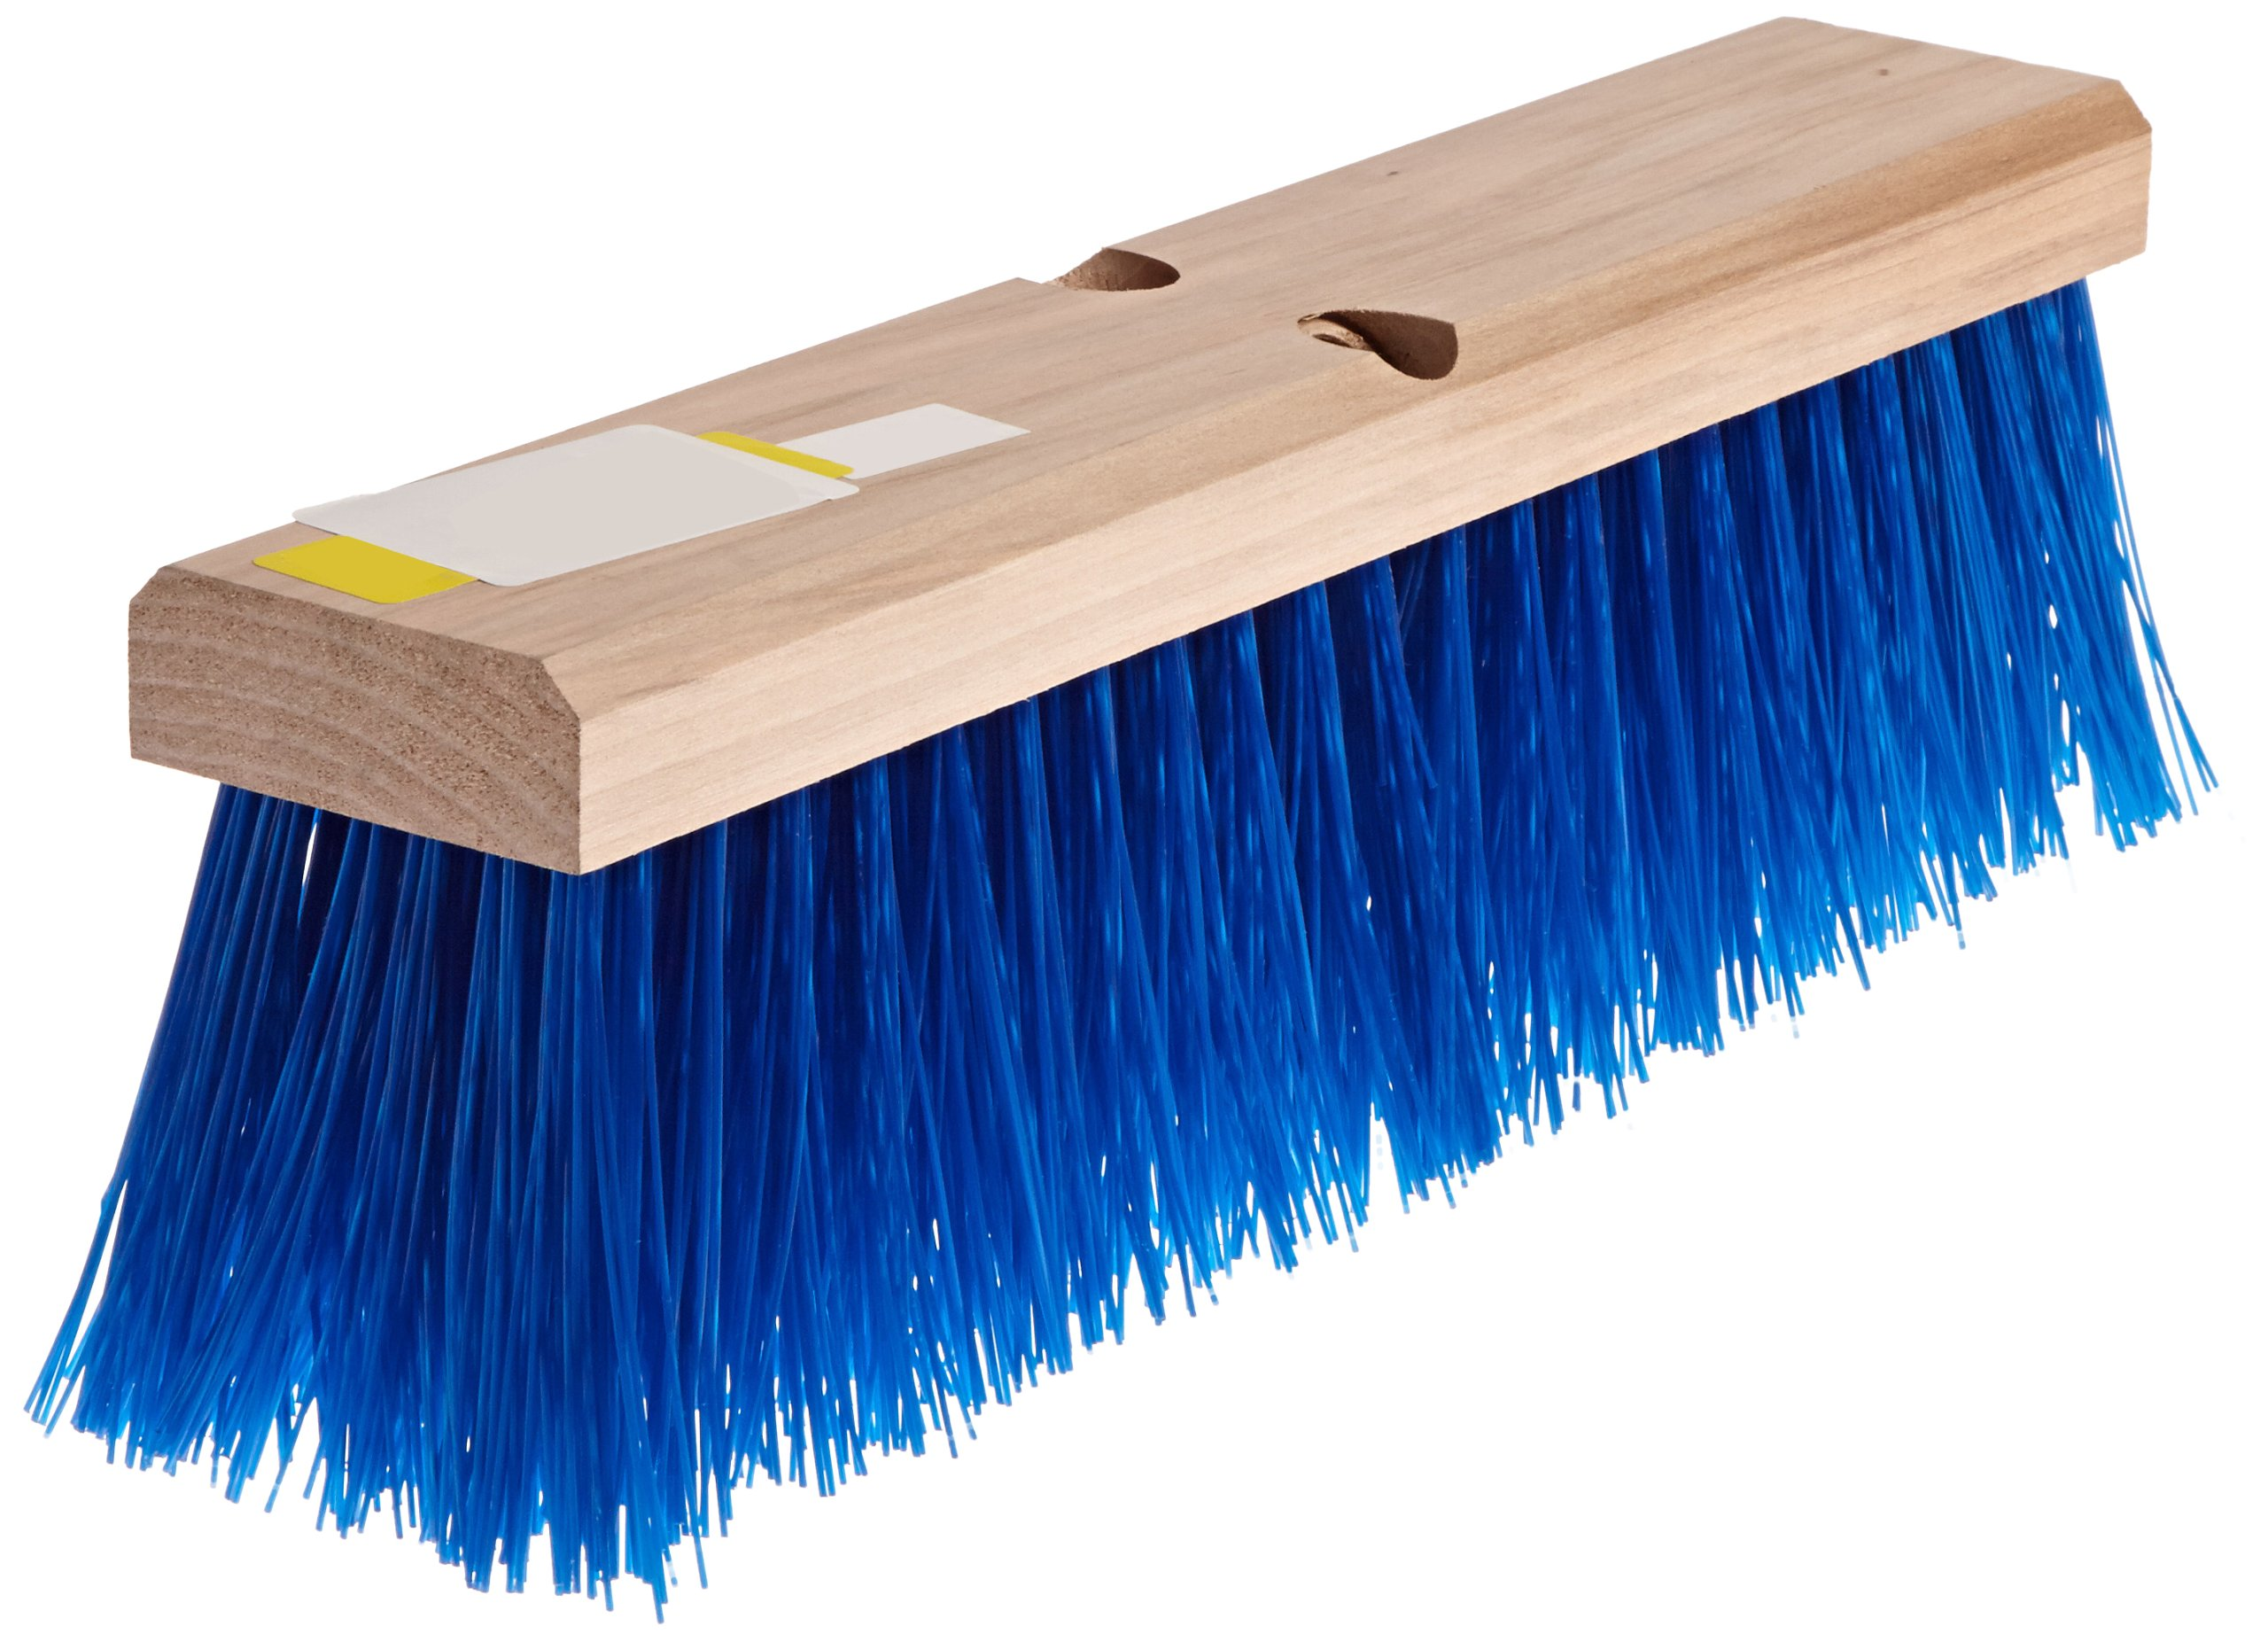 Carlisle 3611401814 Flo-Pac Hardwood Block Floor Sweep, Heavy Polypropylene Bristles, 4-1/2'' Bristle Trim, 18'' Length, Blue by Carlisle (Image #2)